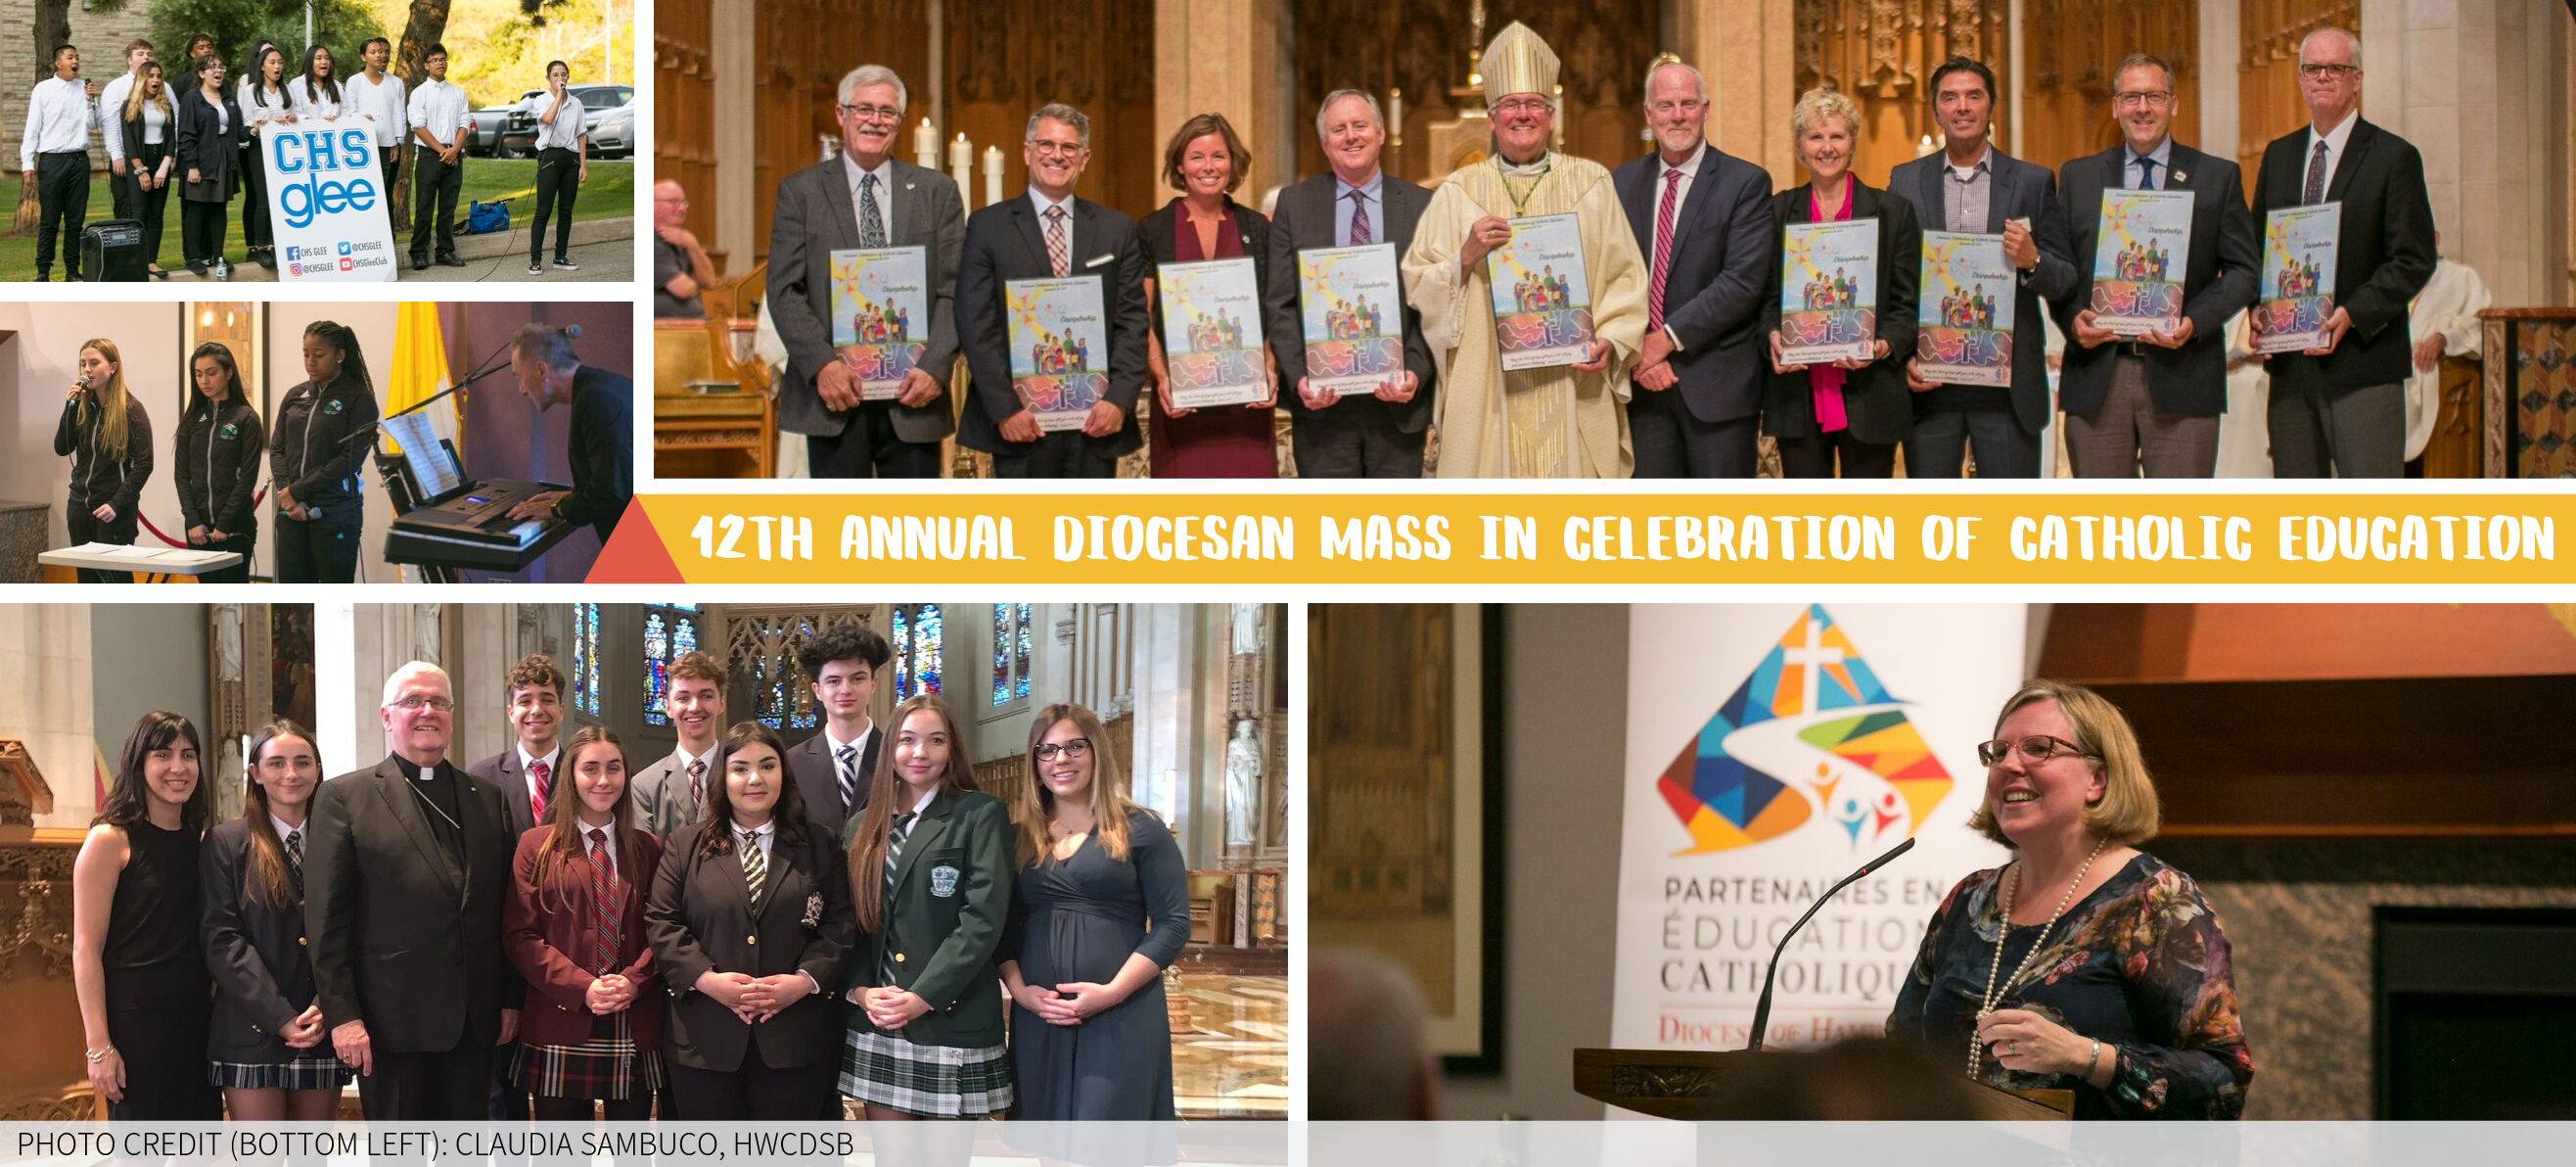 Highlights from the 12th Annual Diocesan Mass for Catholic Education